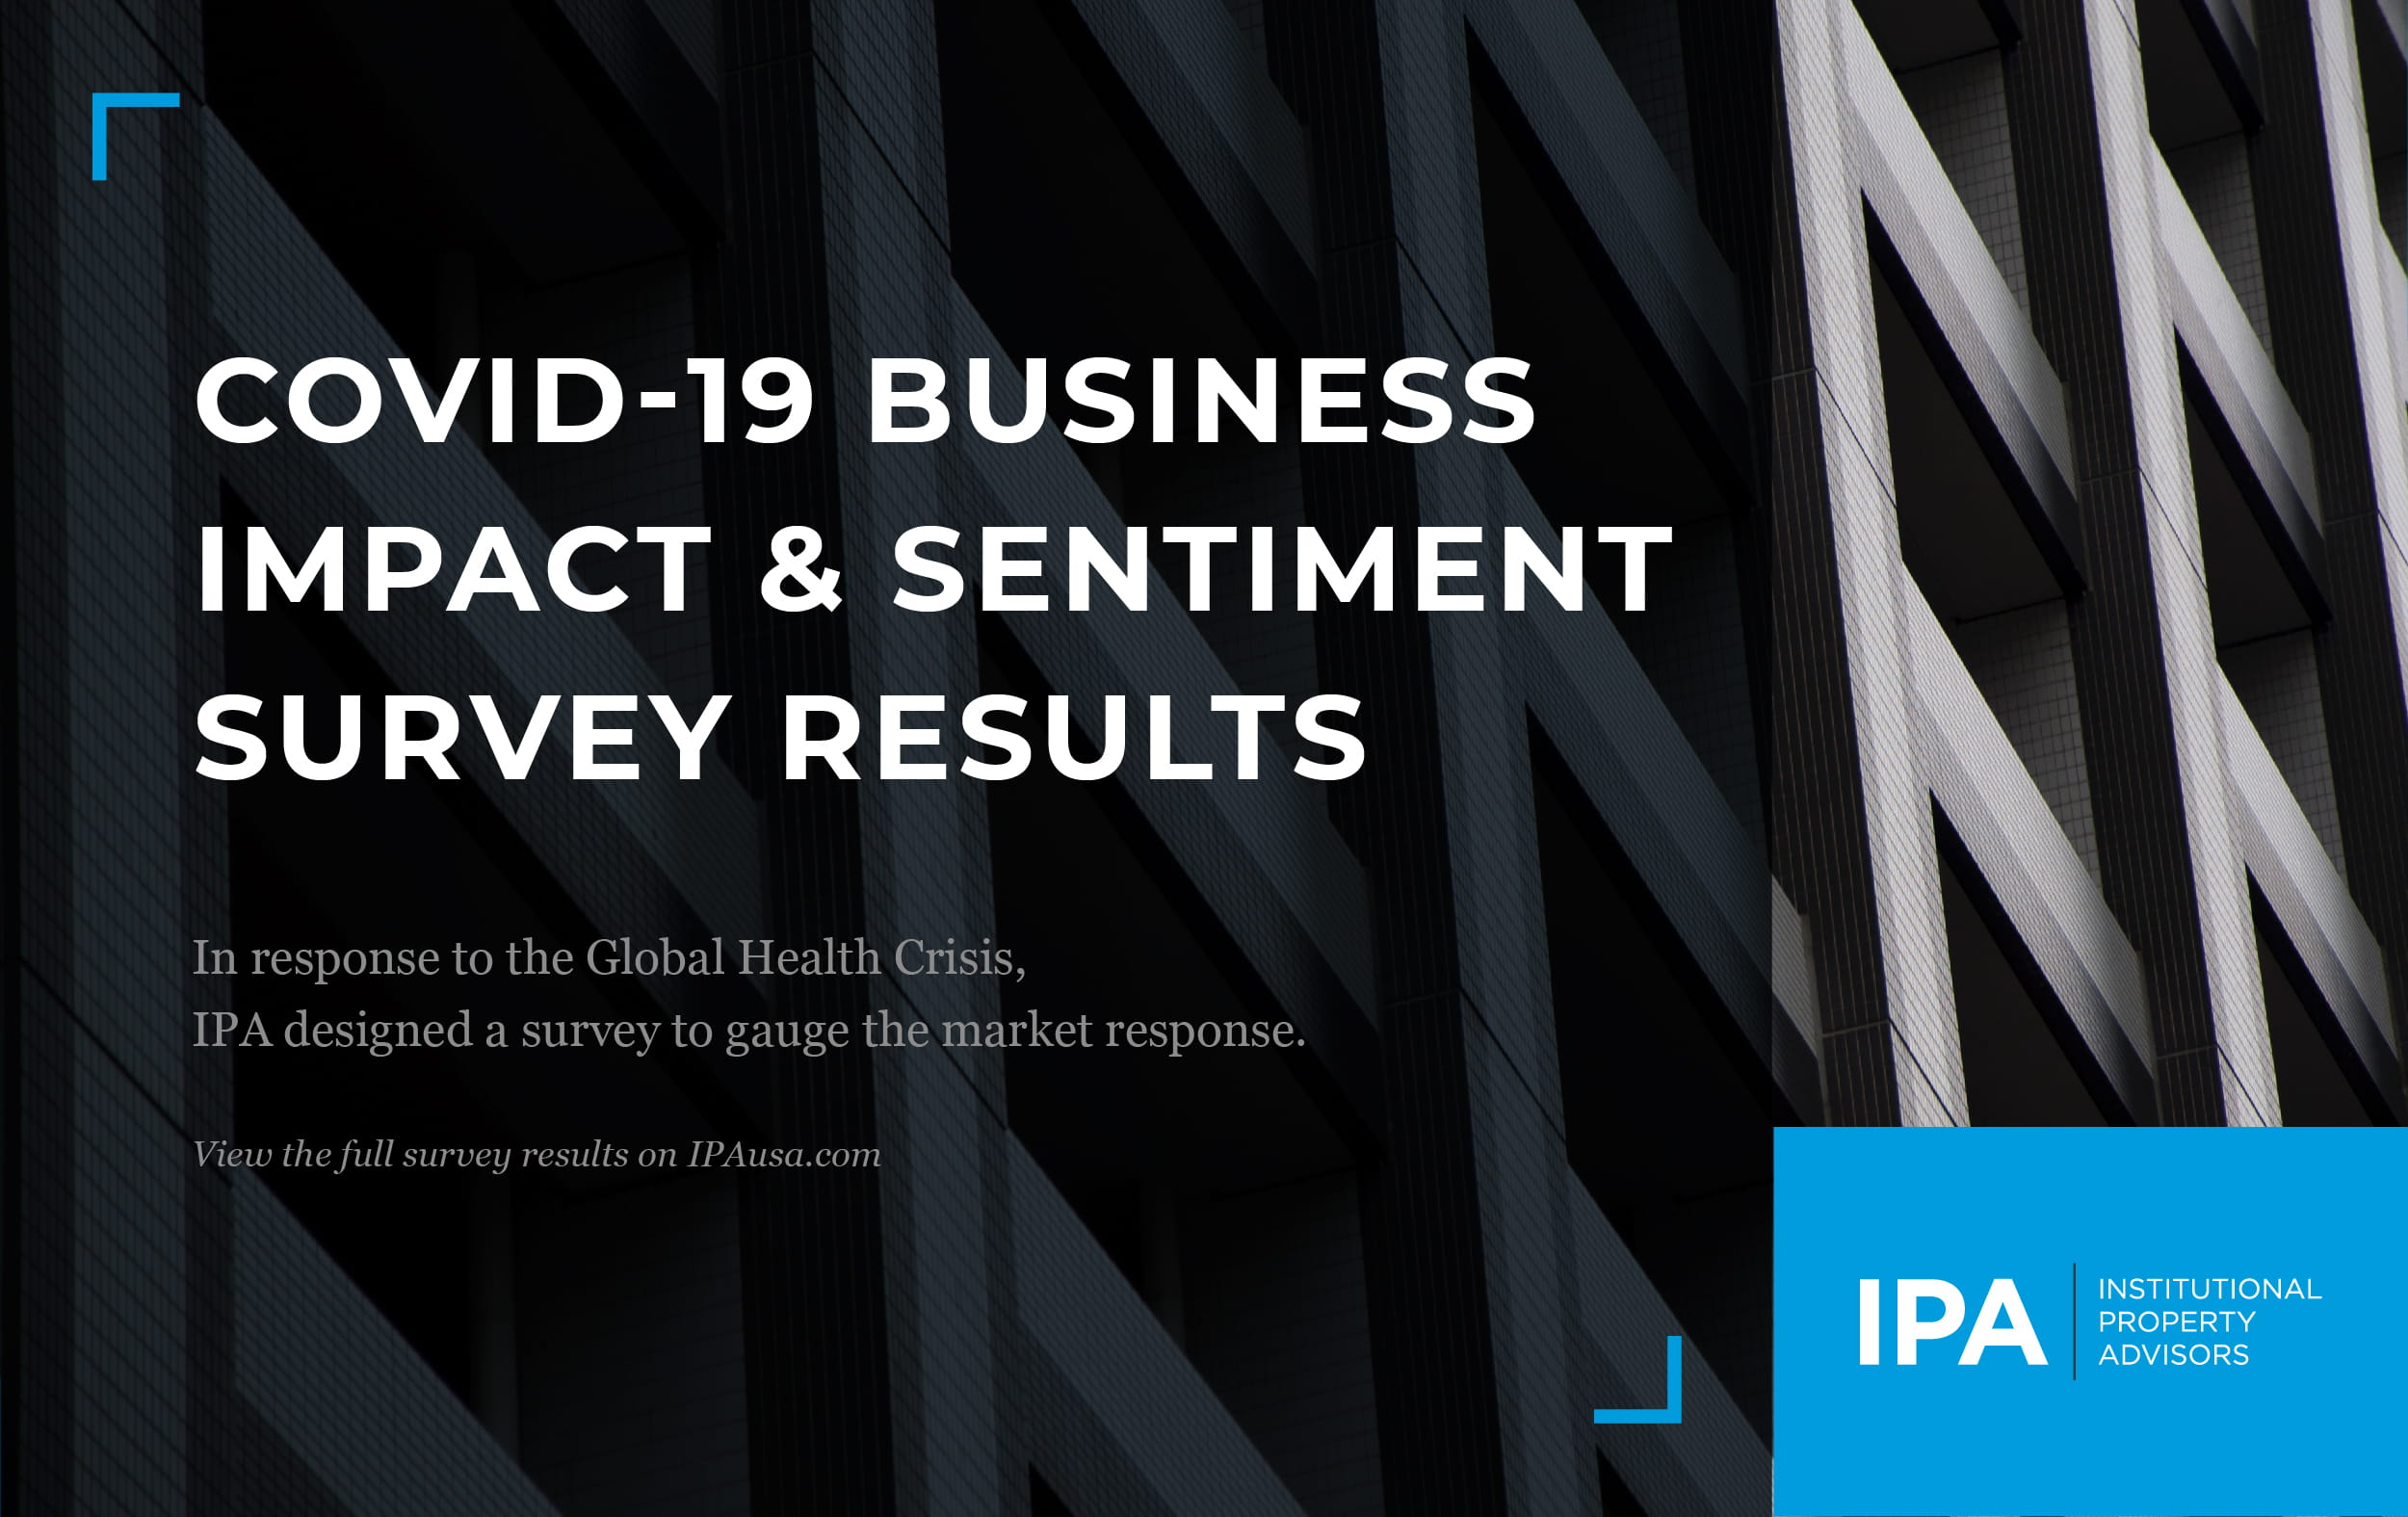 COVID-19 Impact & Sentiment Survey Results